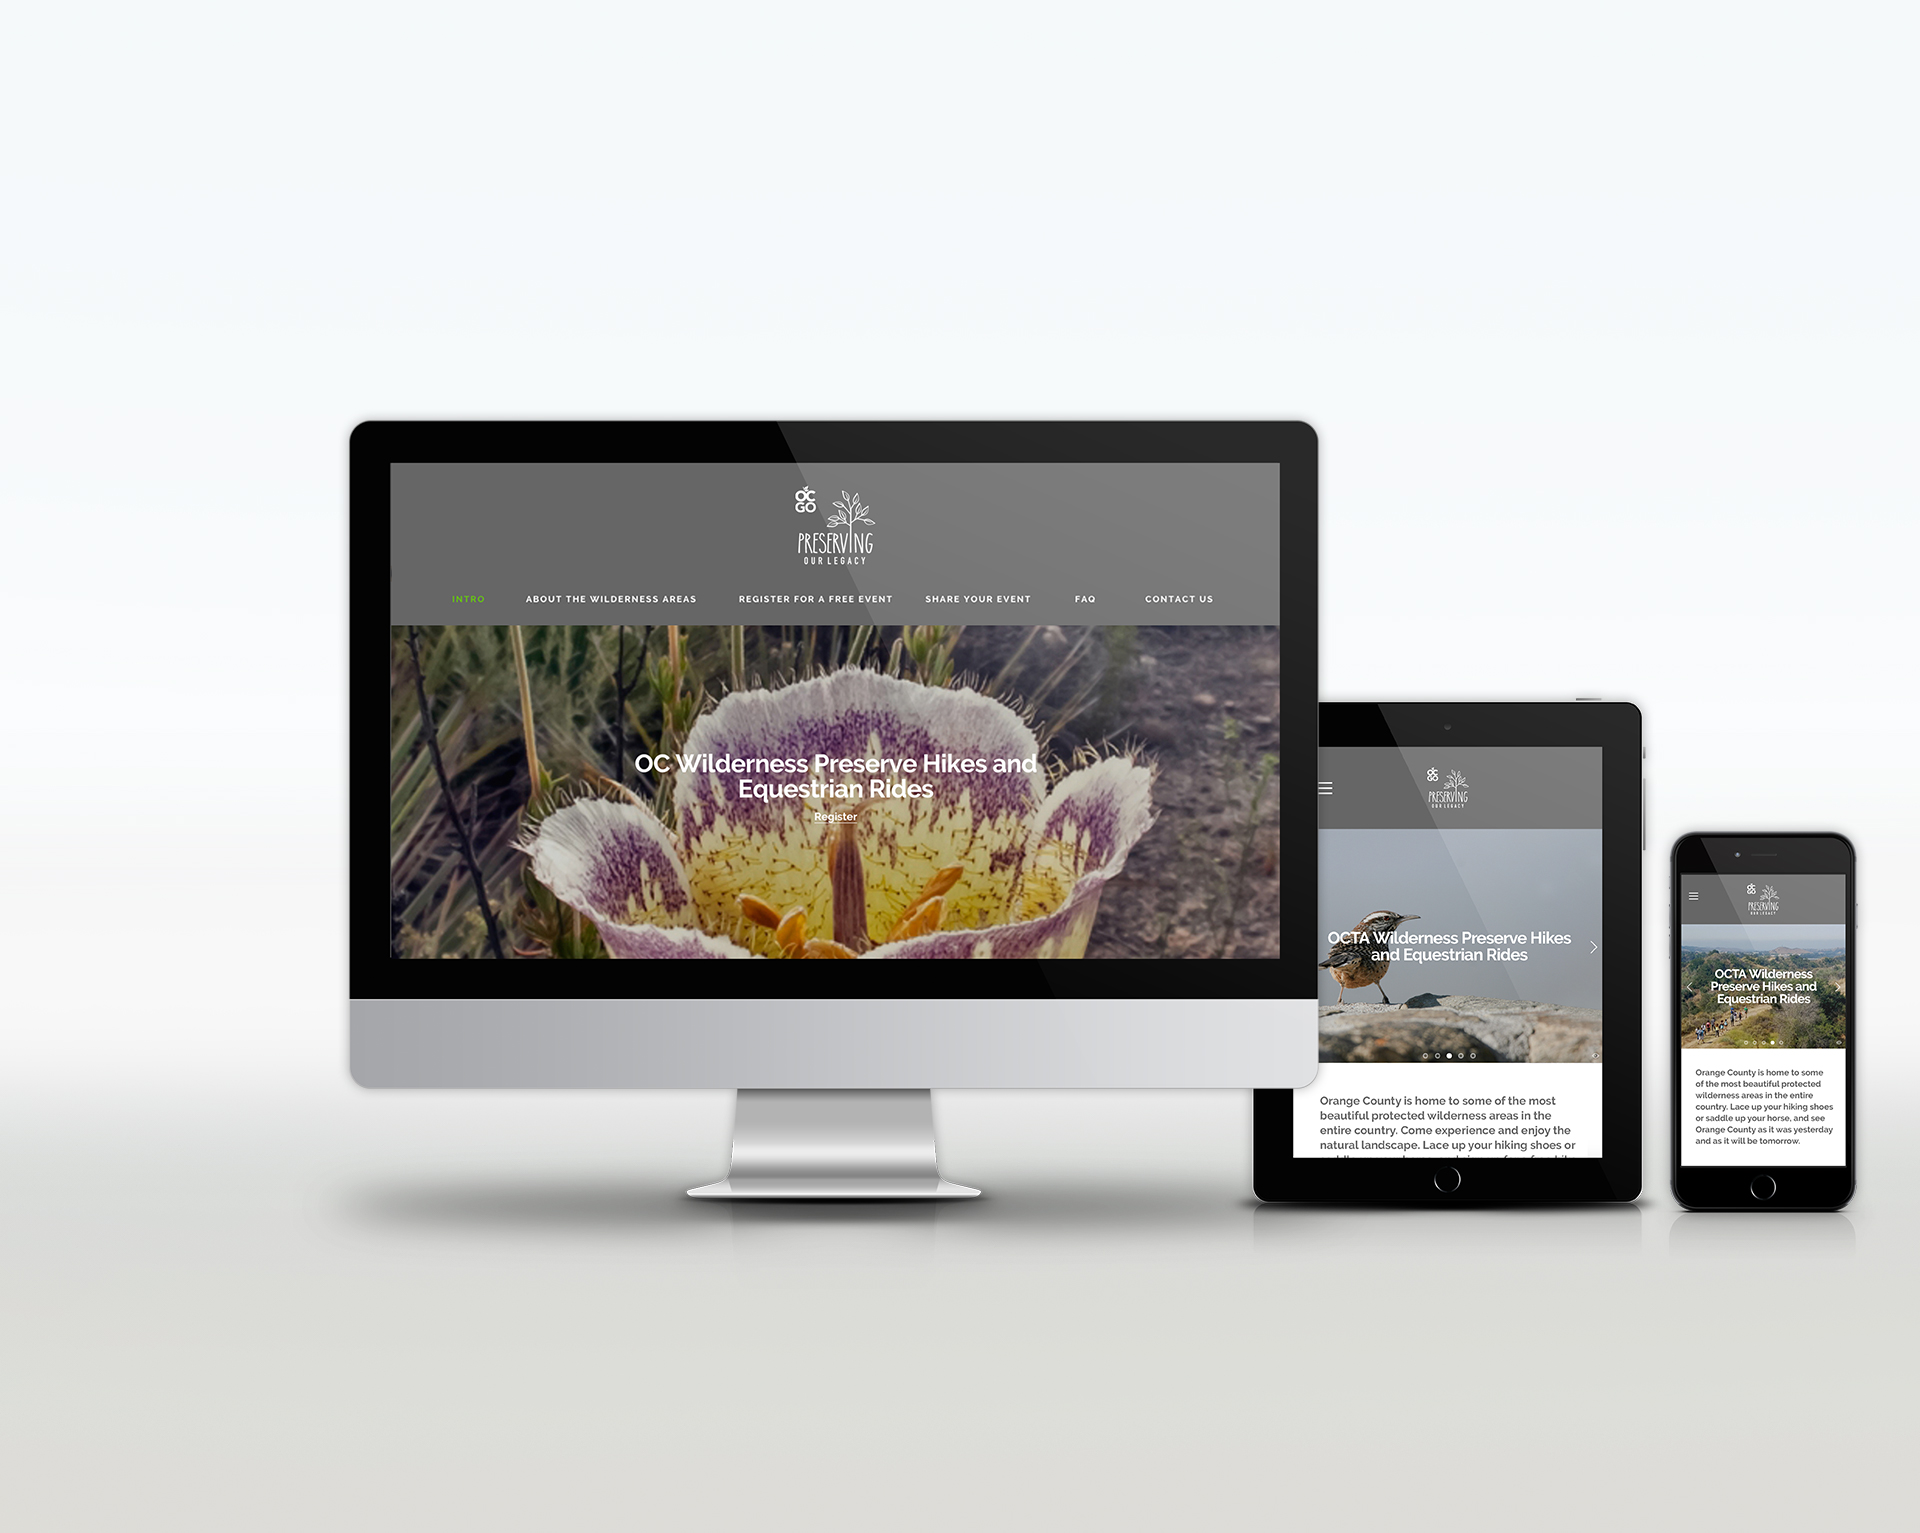 OC GO | protected lands and preserves in Orange County | brand, print, digital, website, web, microsite, social media design | nature, natural beauty